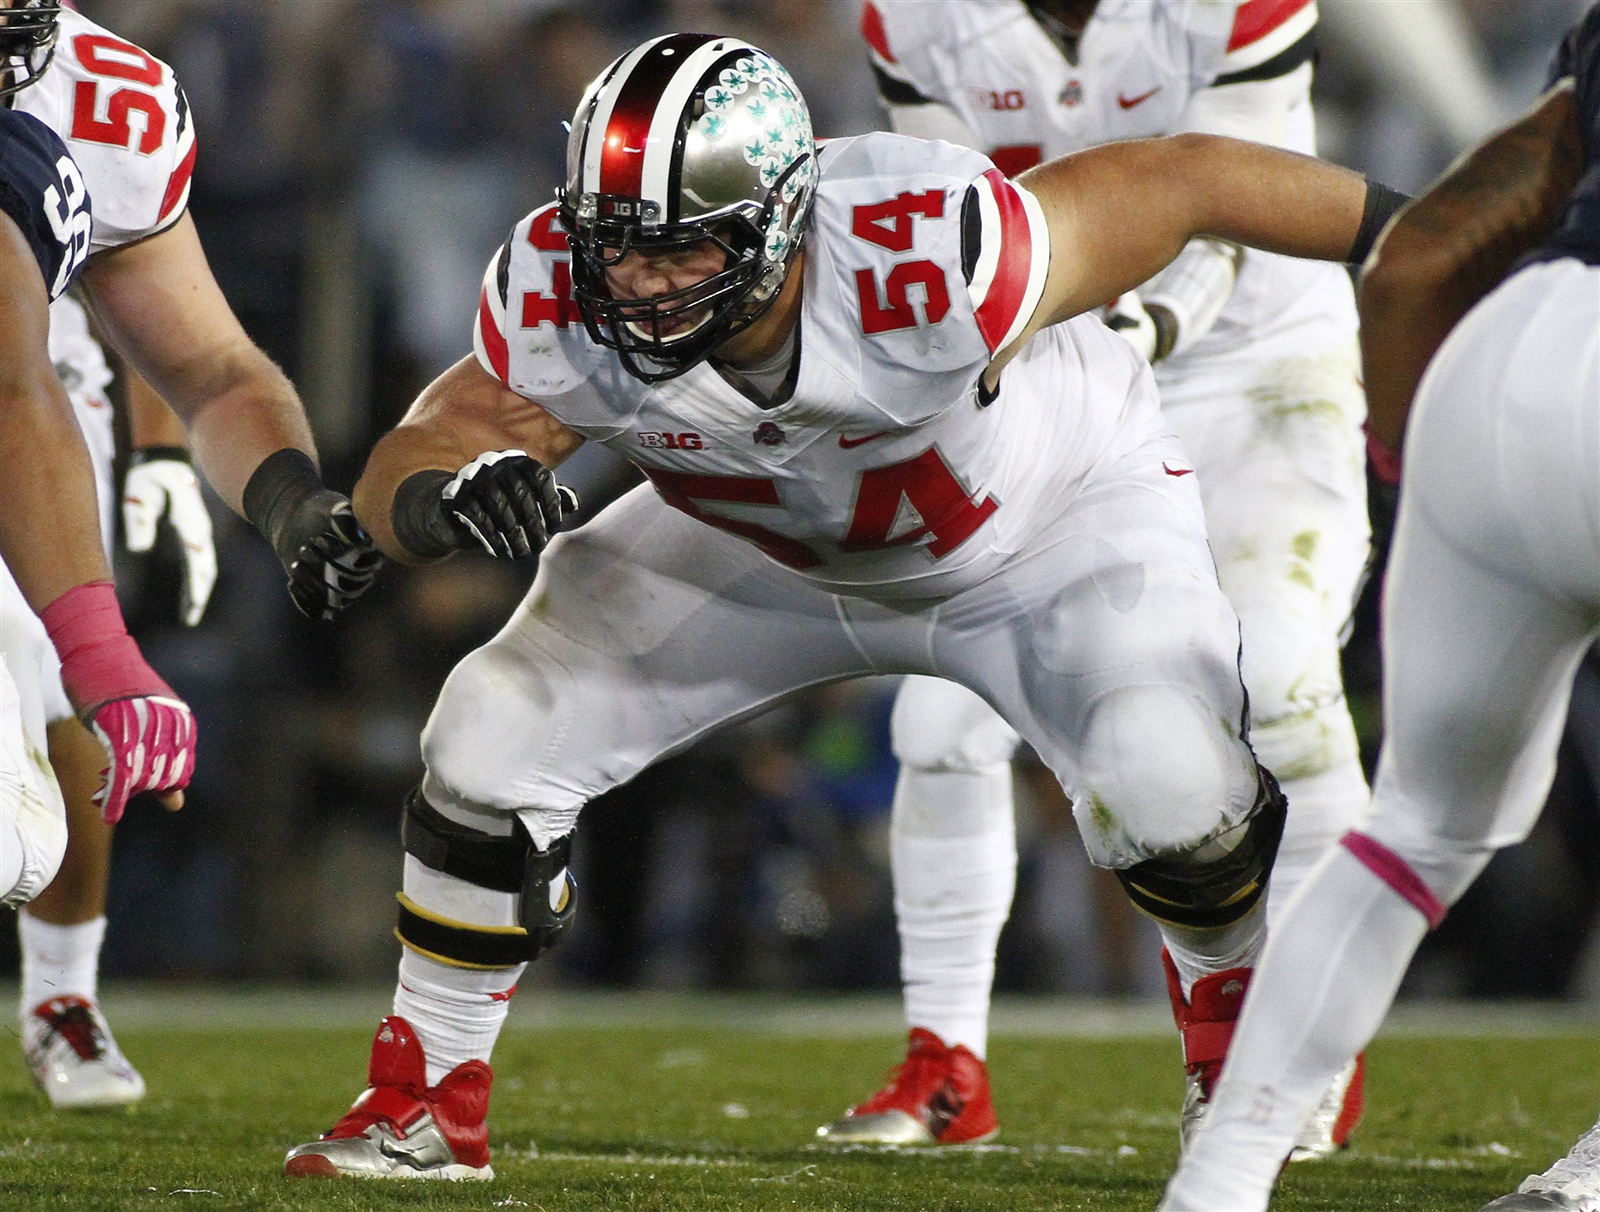 Lance Zierlein of NFL.com: No. 21 - Billy Price, C, Ohio State: 'Price is a tremendously powerful drive blocker who can fill the void left by the injury to Eric Wood.'